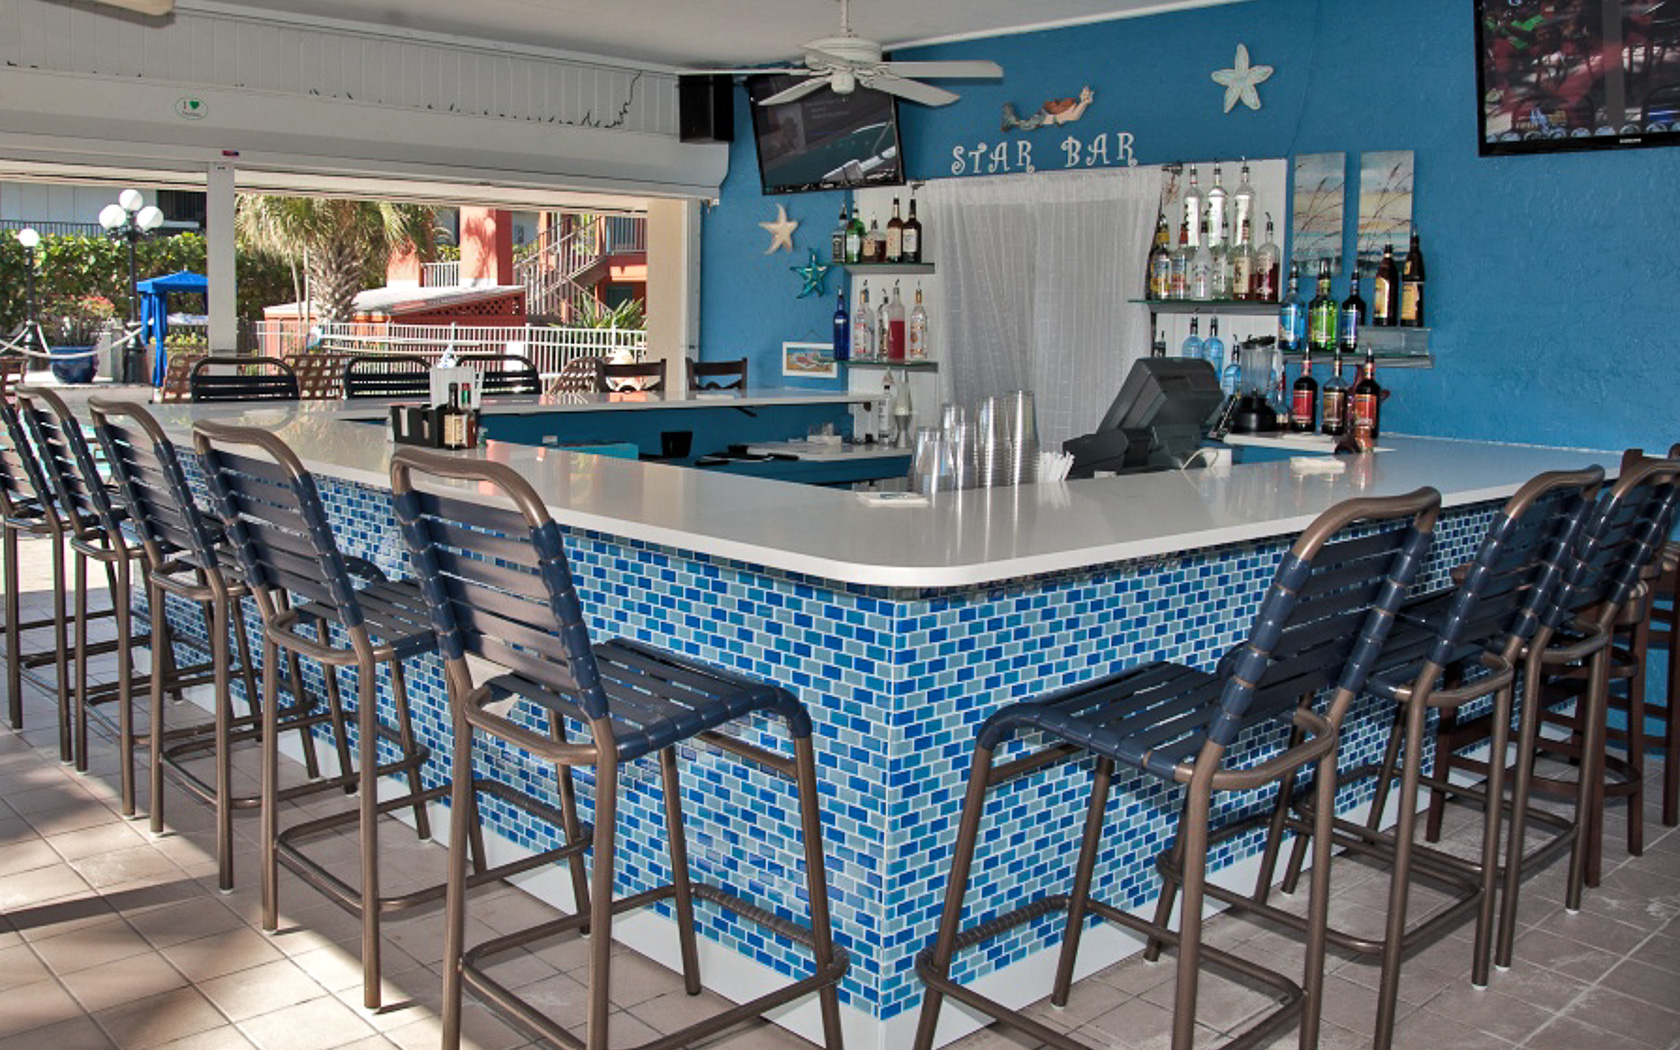 Bar area in blue tones with tall chairs